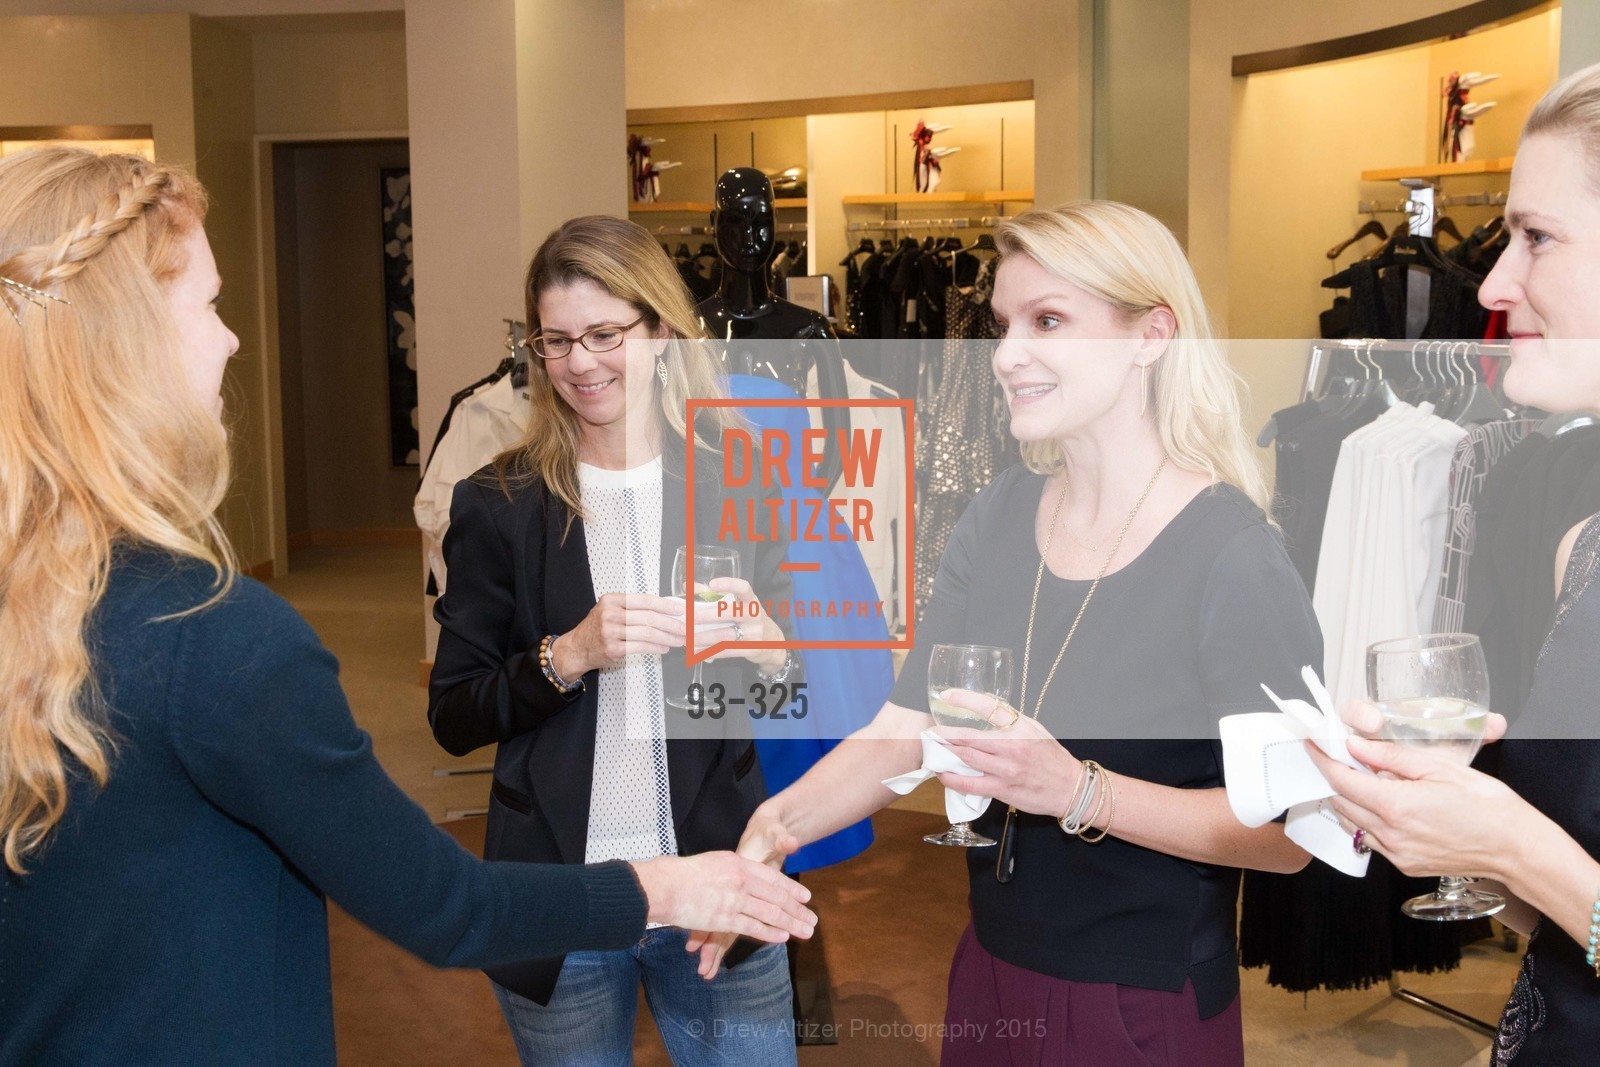 Natasha Bradley, Kristy Caylor, Maiyet Reception at Neiman Marcus, Neiman Marcus, September 29th, 2015,Drew Altizer, Drew Altizer Photography, full-service agency, private events, San Francisco photographer, photographer california